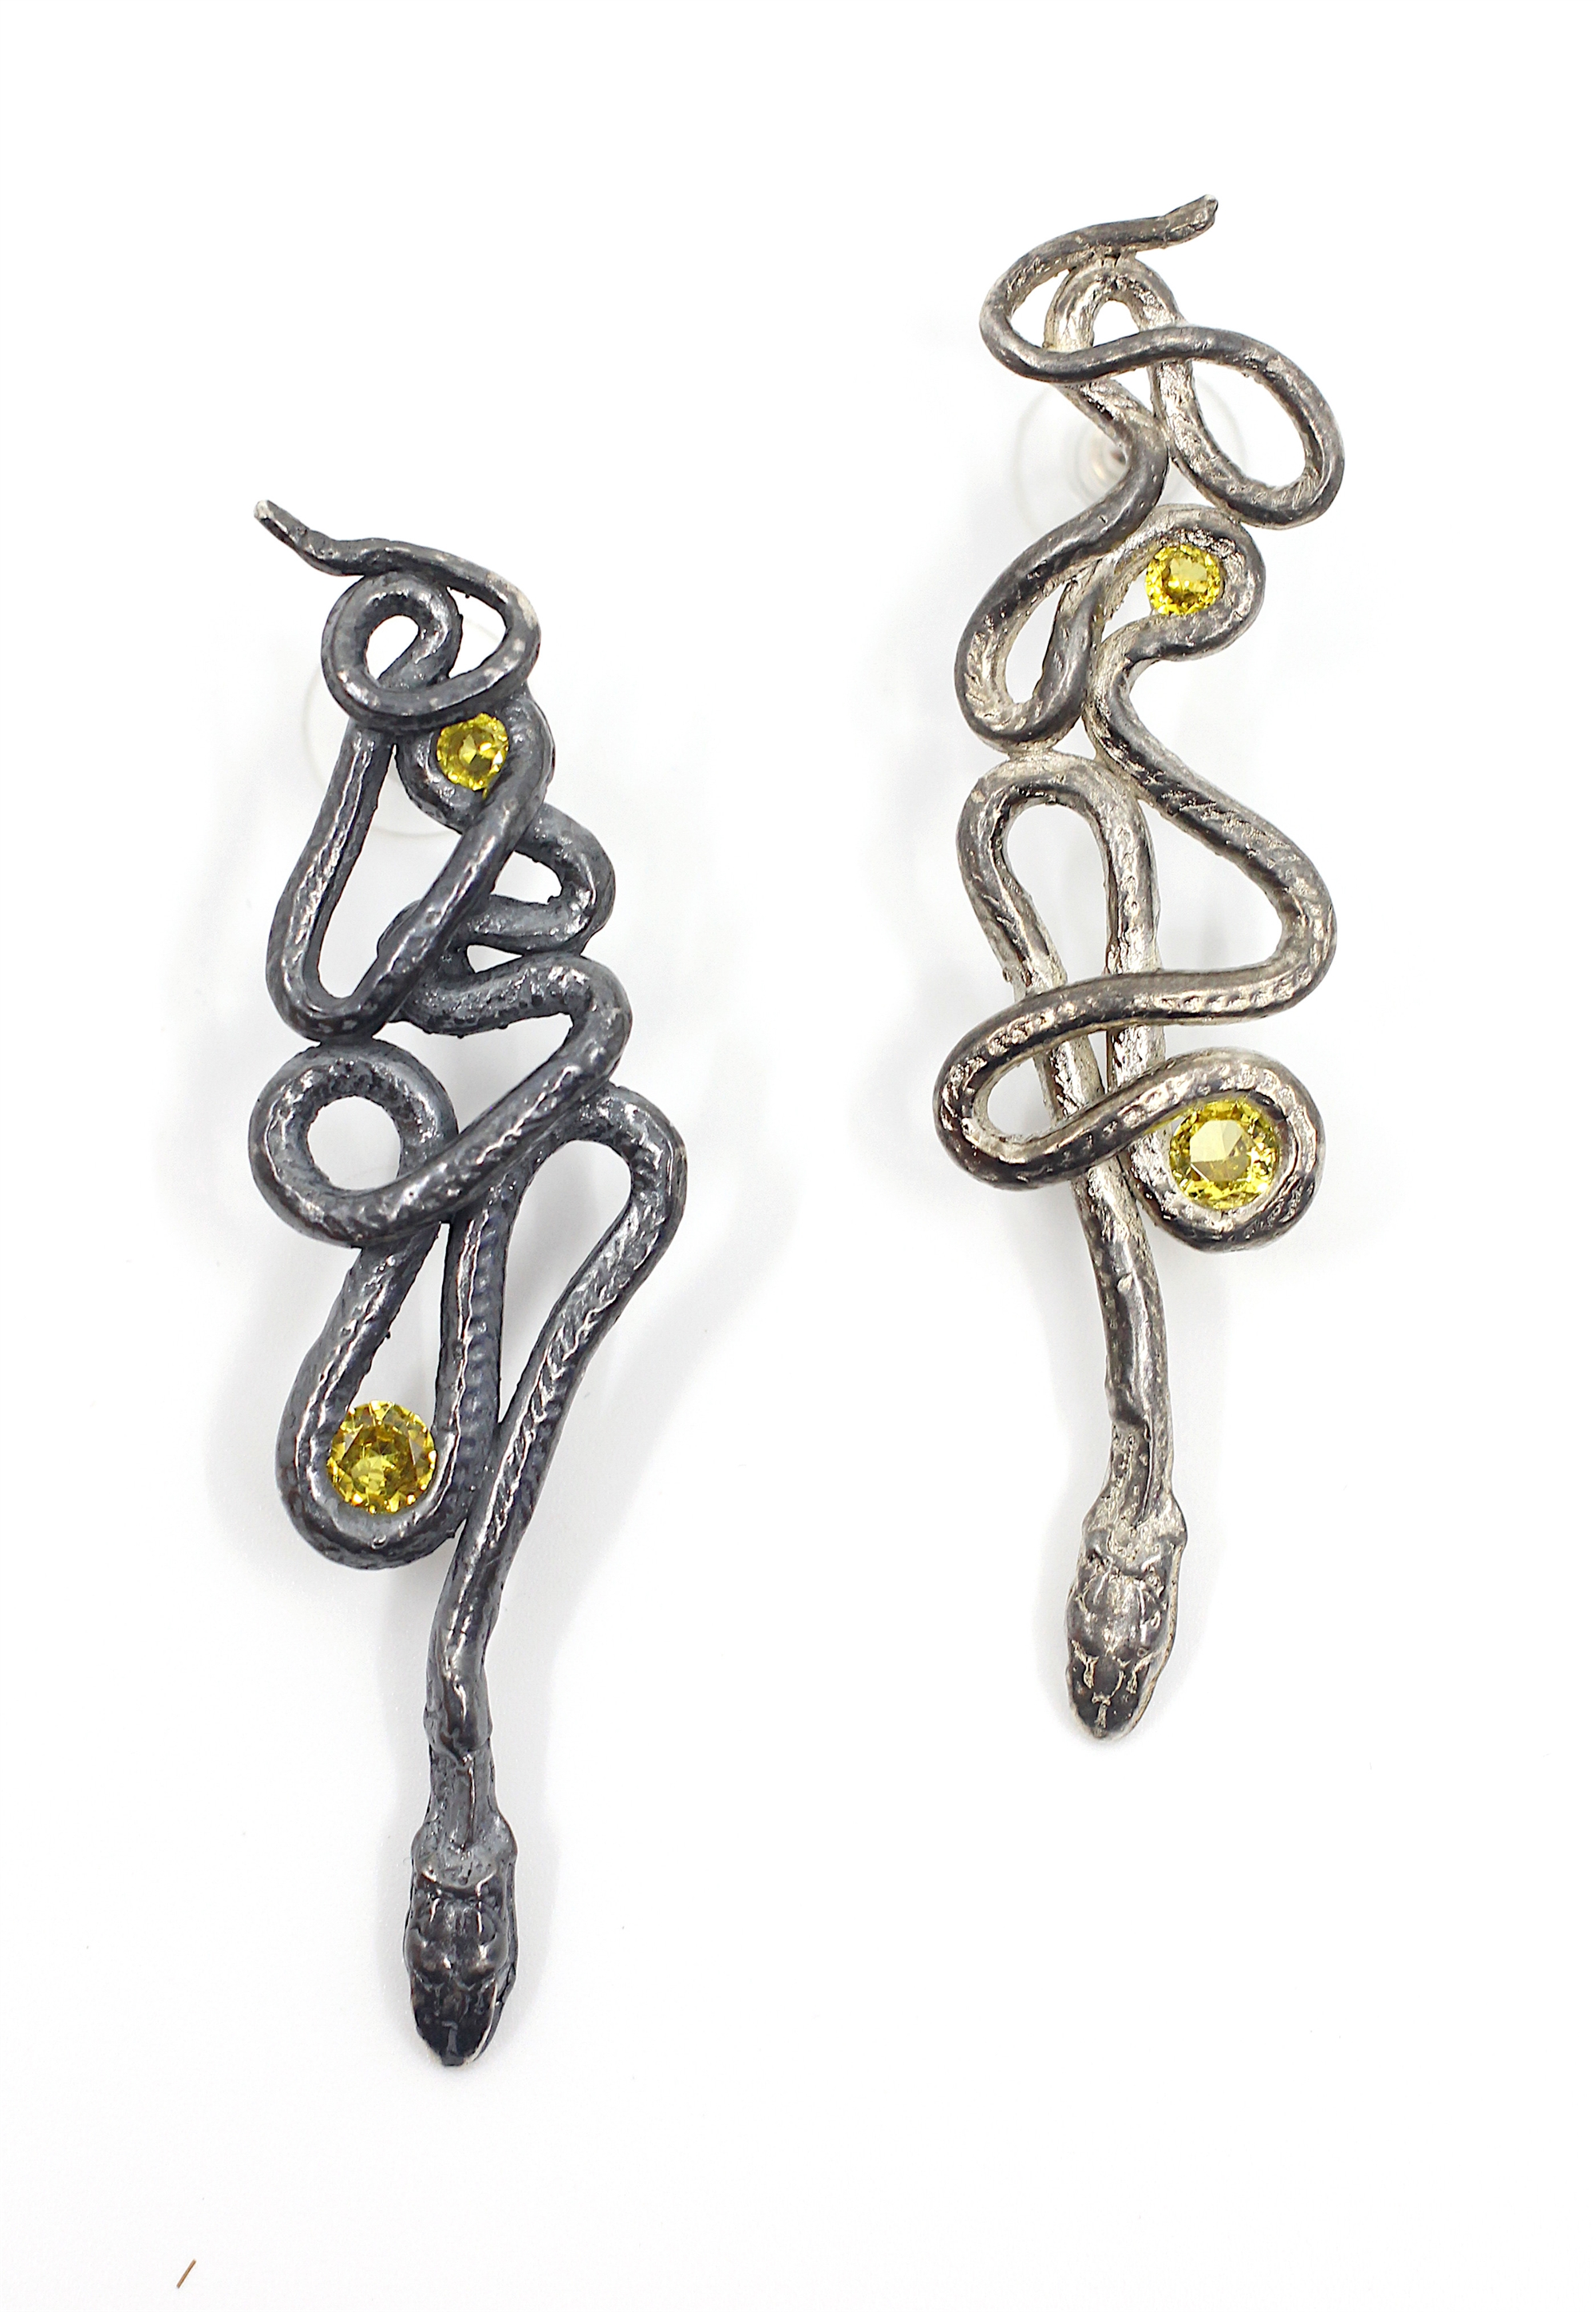 Yellow Topaz Serpentine Earrings by Anna Johnson